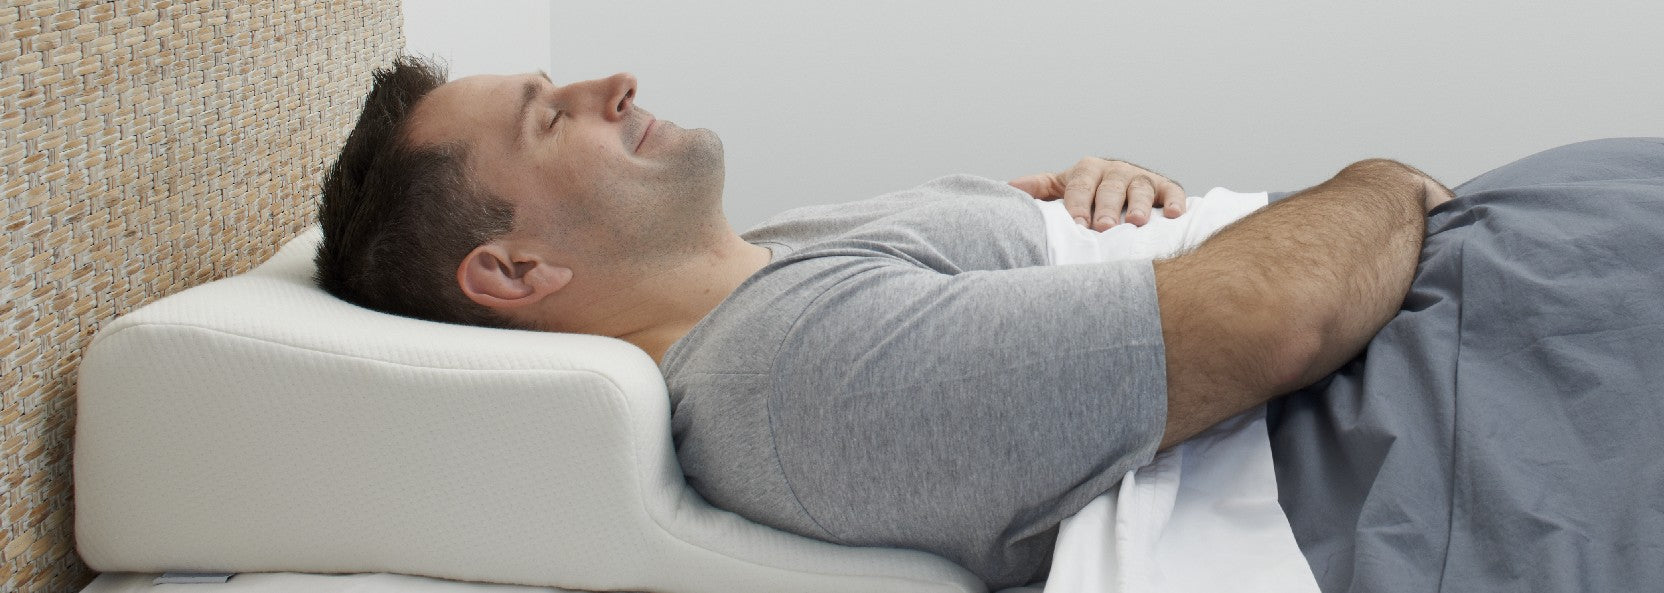 A man smiling while sleeping on the Patney sleep positioner pillow.